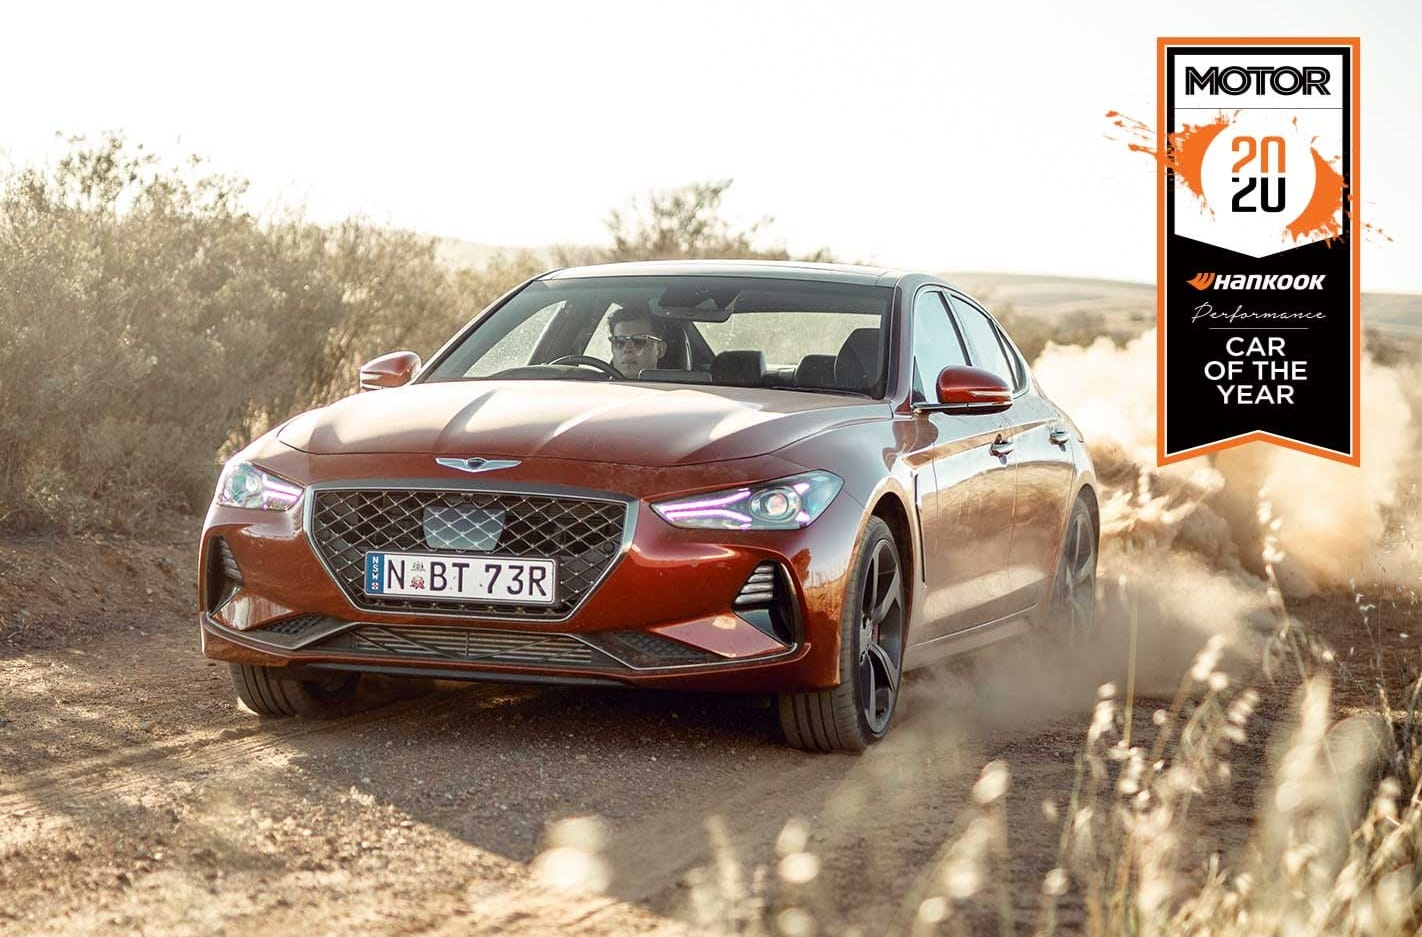 Genesis G70 Performance Car of the Year 2020 results